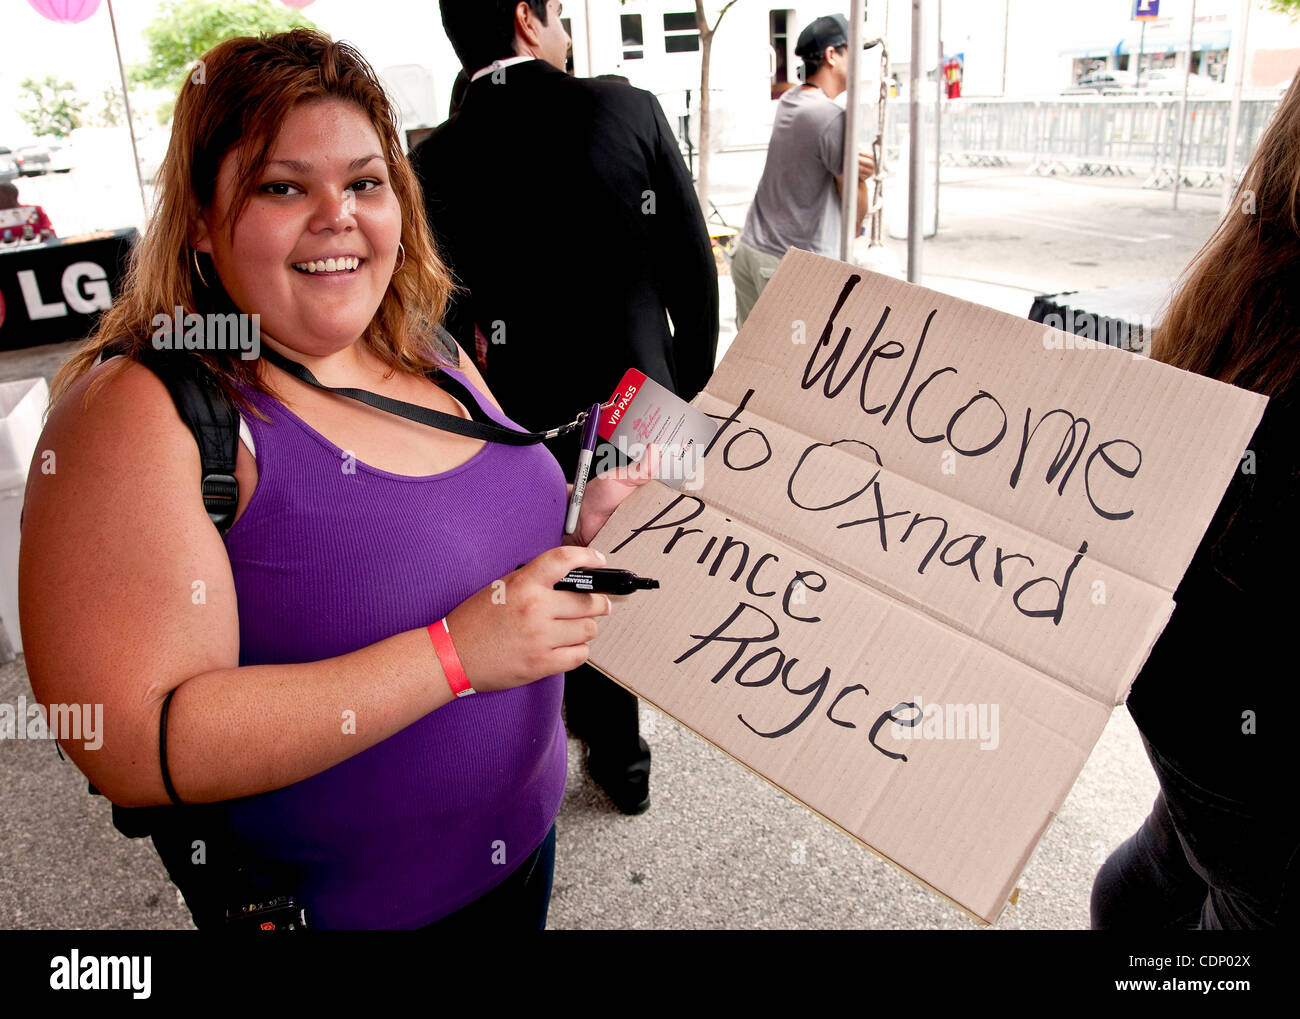 July 09 2011 oxnard california usa a fan writes a welcome july 09 2011 oxnard california usa a fan writes a welcome sign in preparation for a meet and greet with latin recording sensation prince royce at a m4hsunfo